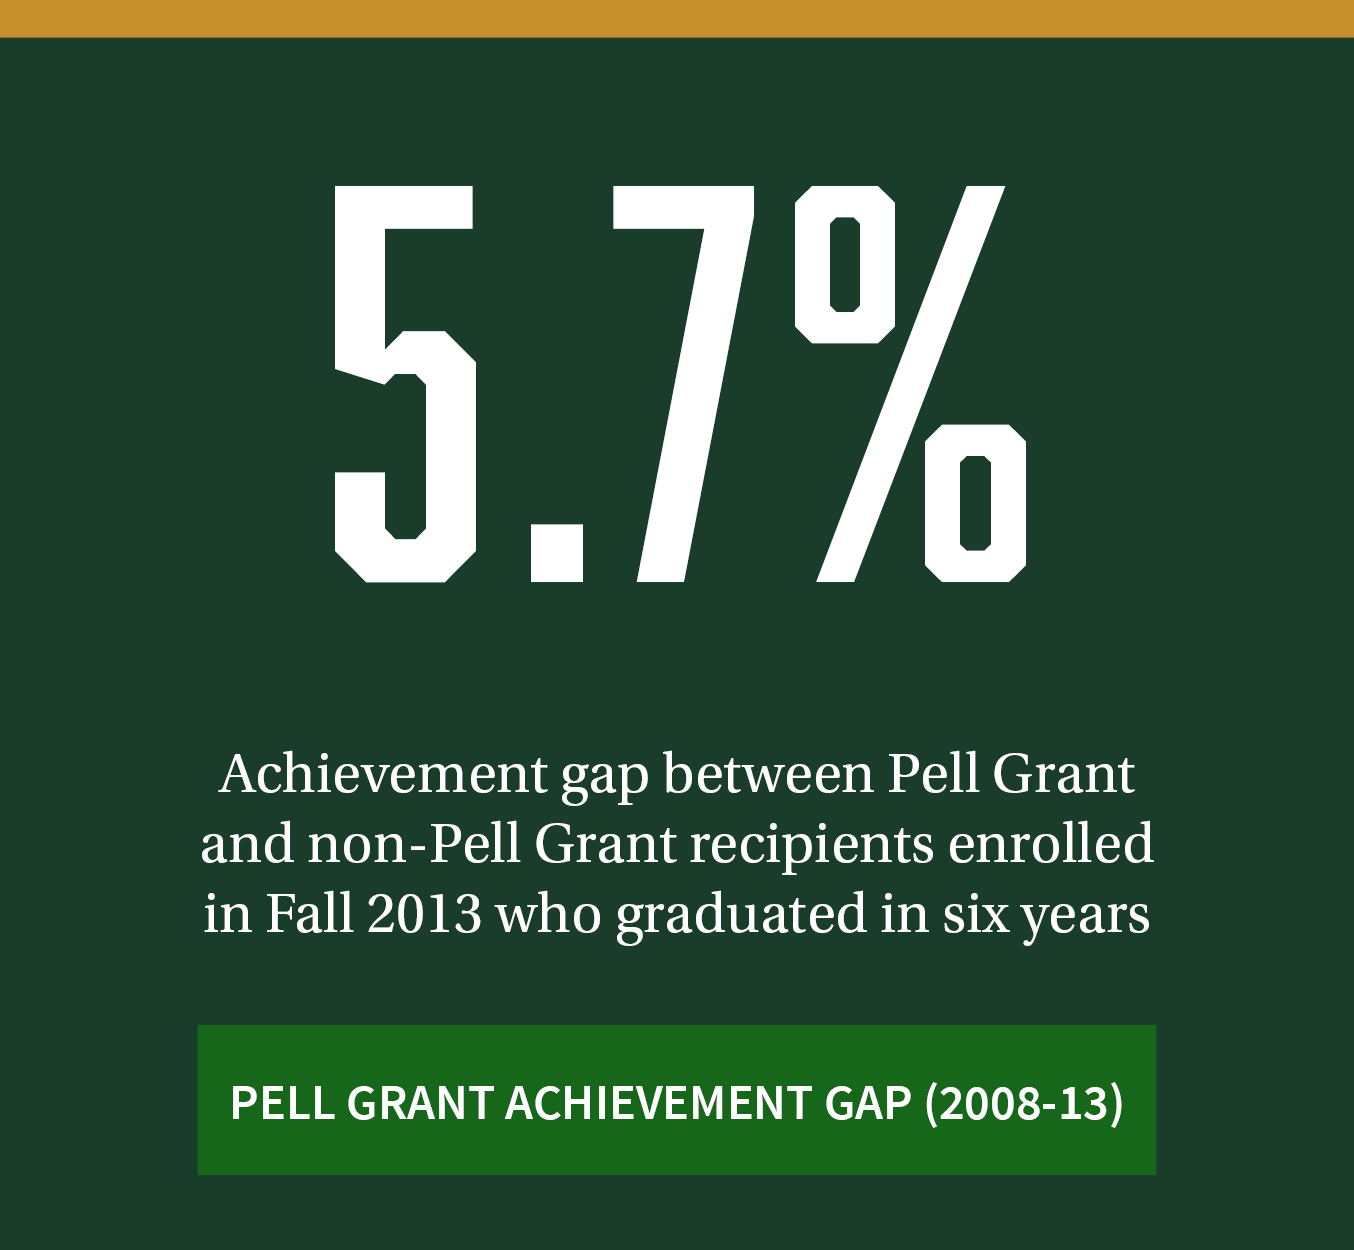 5.7%. Achievement gap between Pell Grant and non-Pell Grant recipients enrolled in Fall 2013 who graduated in six years. Click to review additional Pell Grant achievement gap data between 2008-2013.